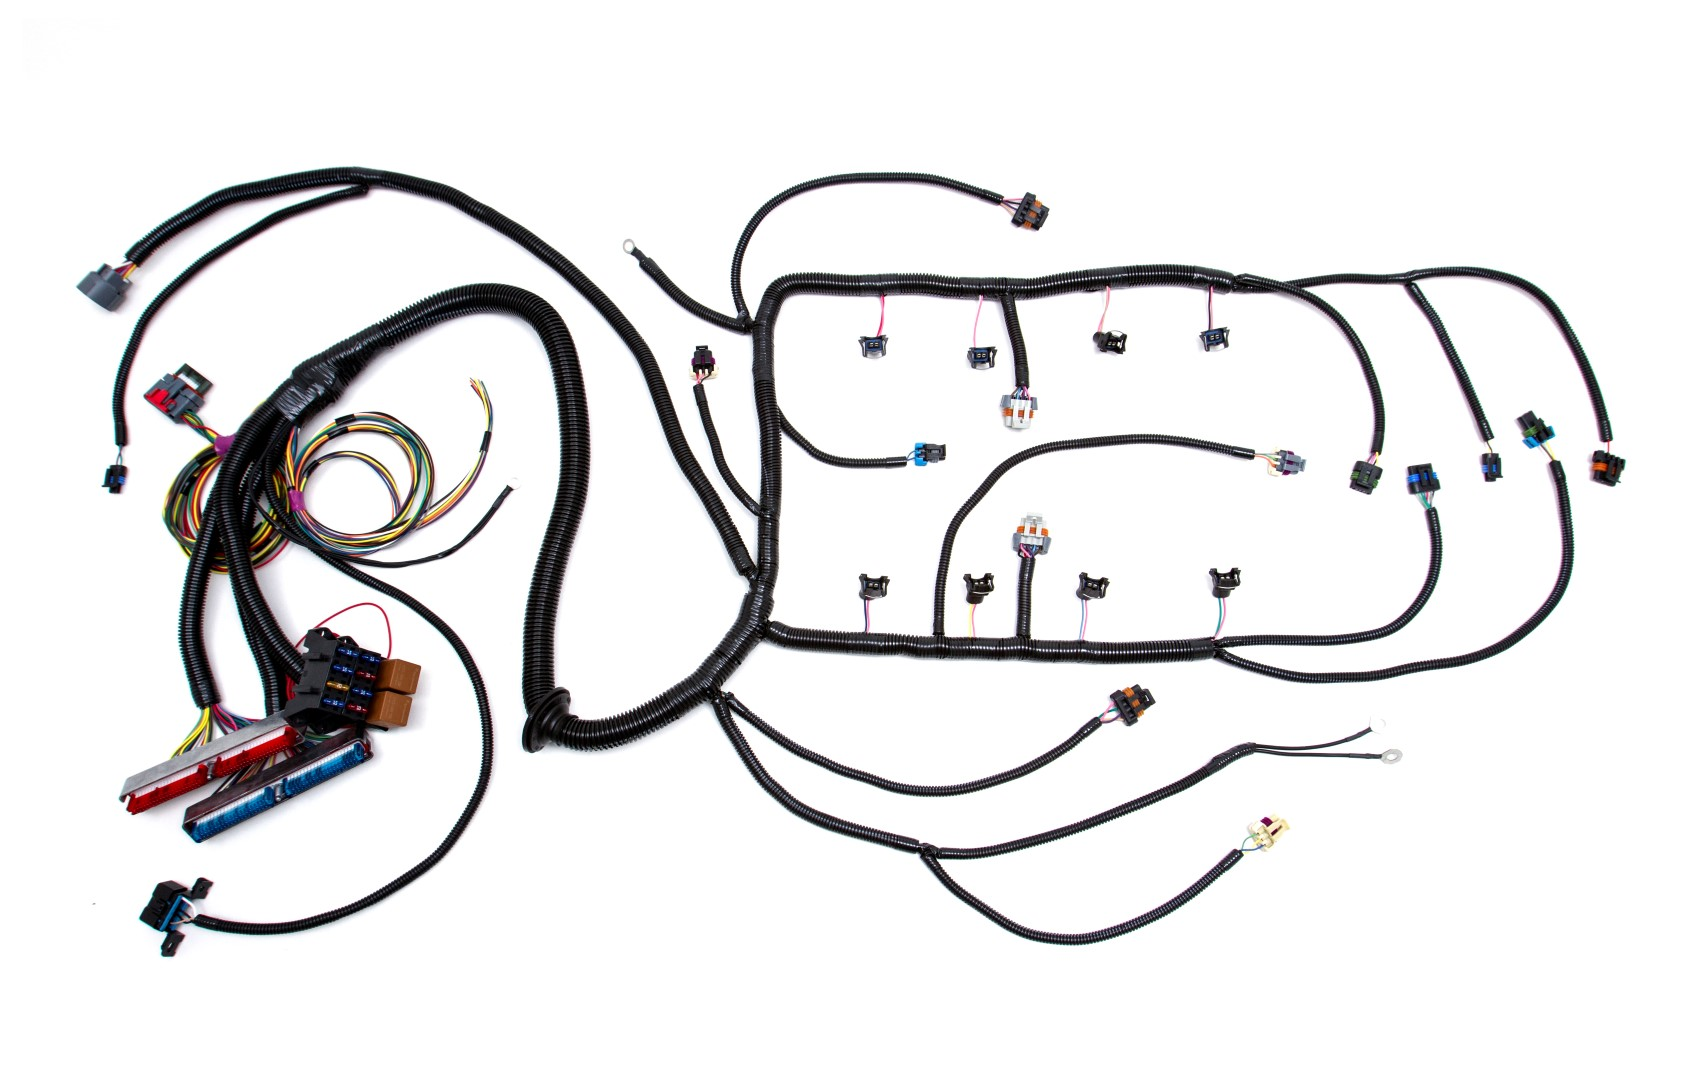 c5 corvette wiring harness